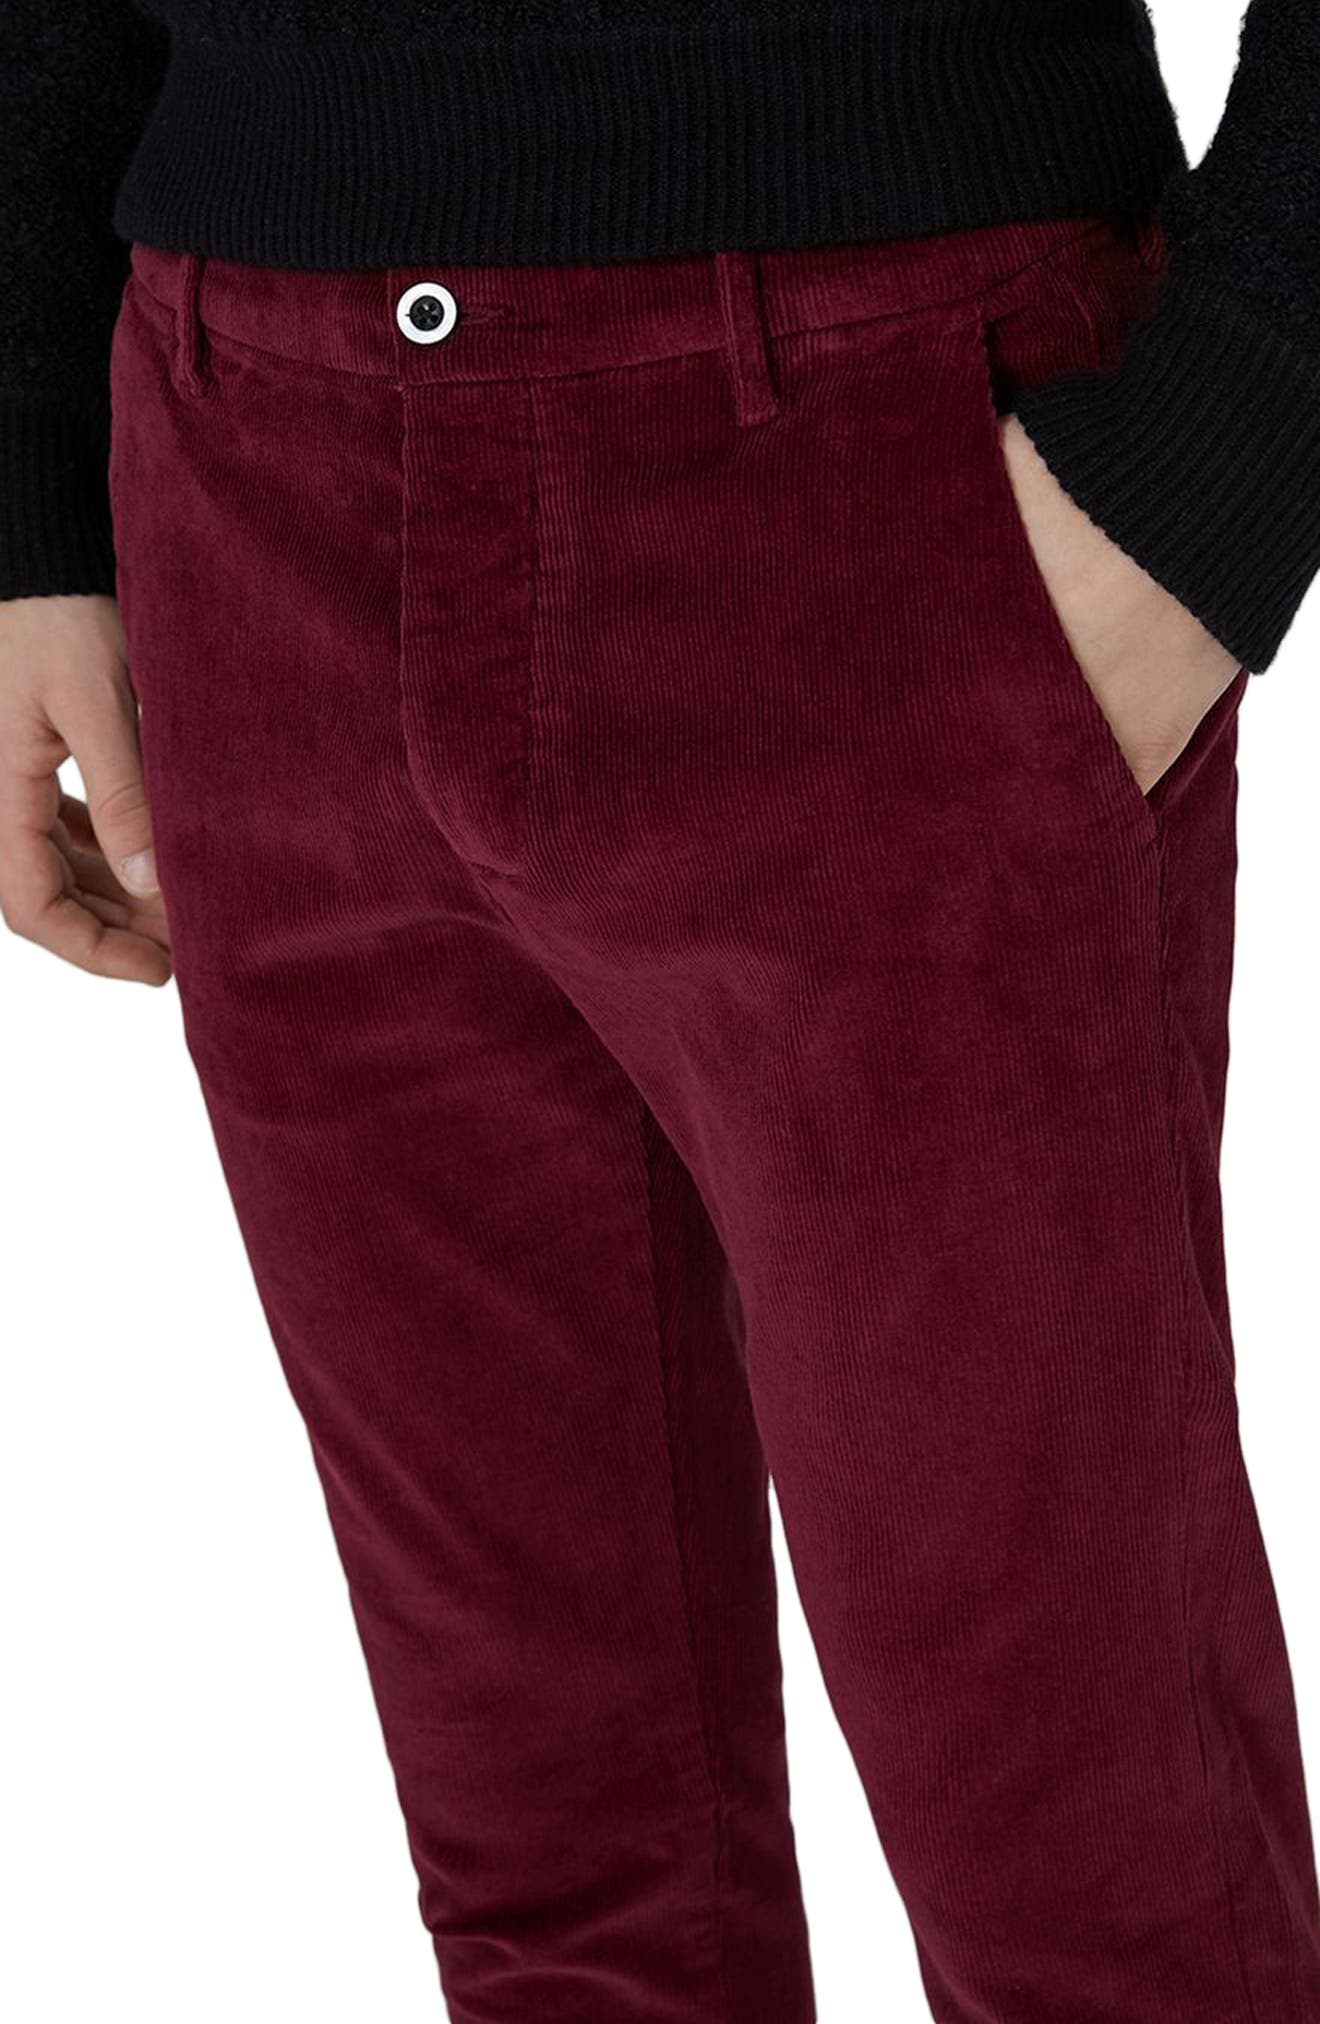 Skinny Fit Corduroy Trousers,                             Alternate thumbnail 6, color,